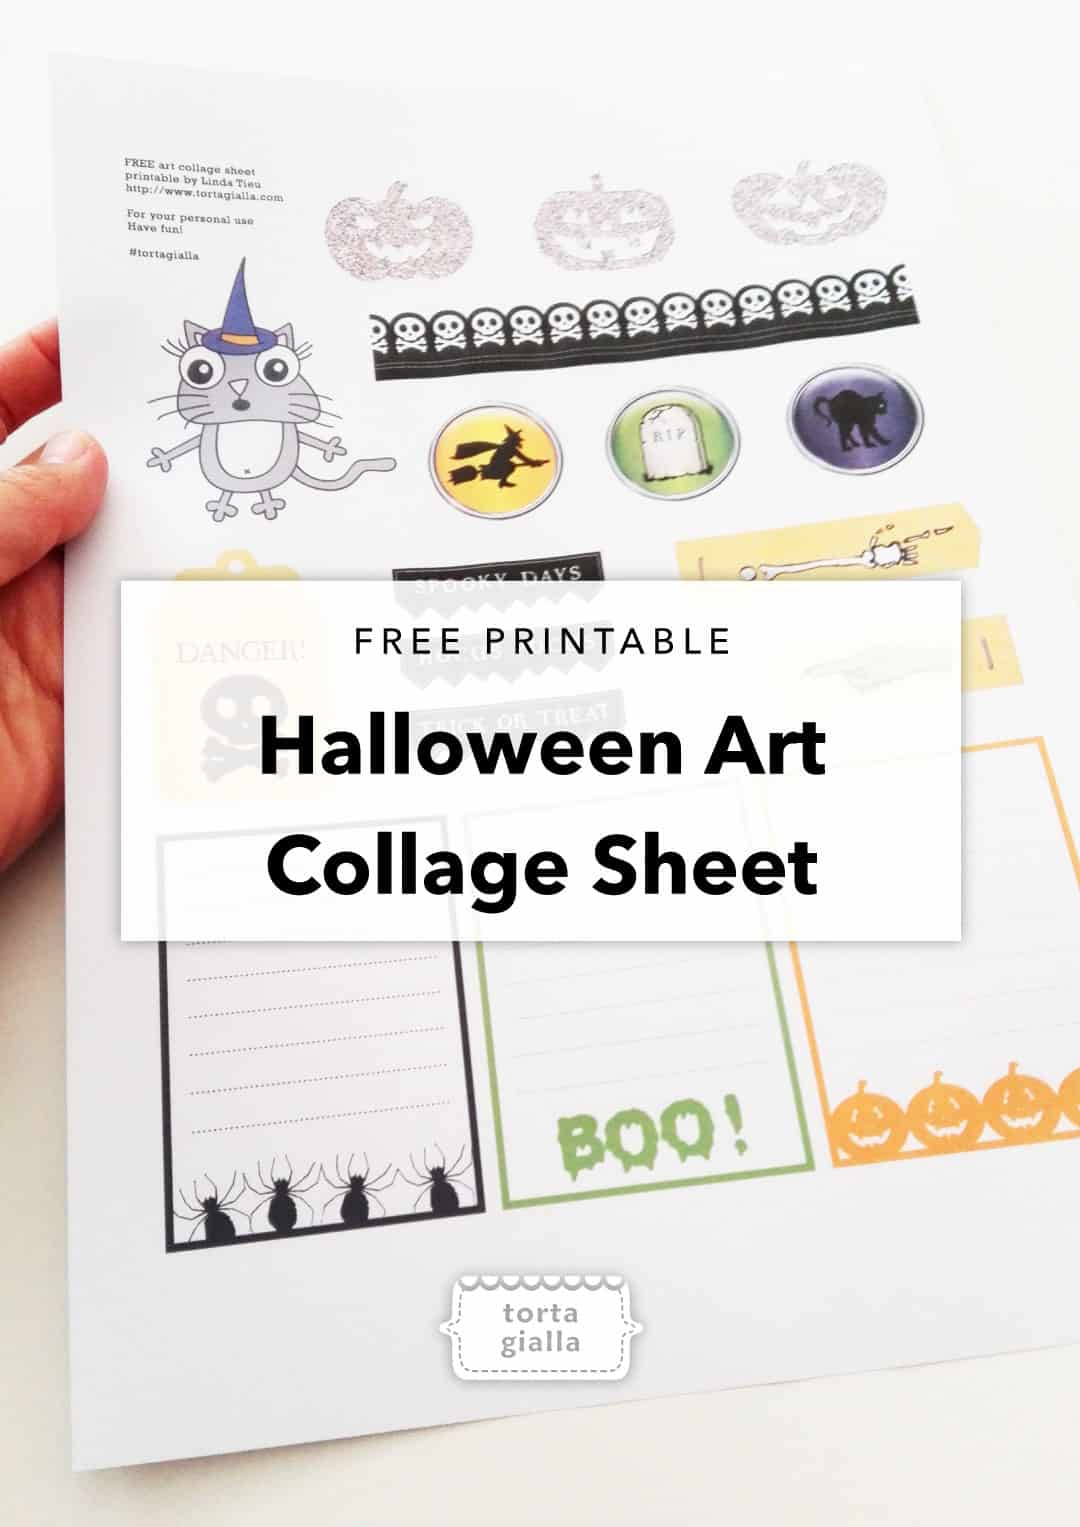 FREE Halloween Art Collage Printable